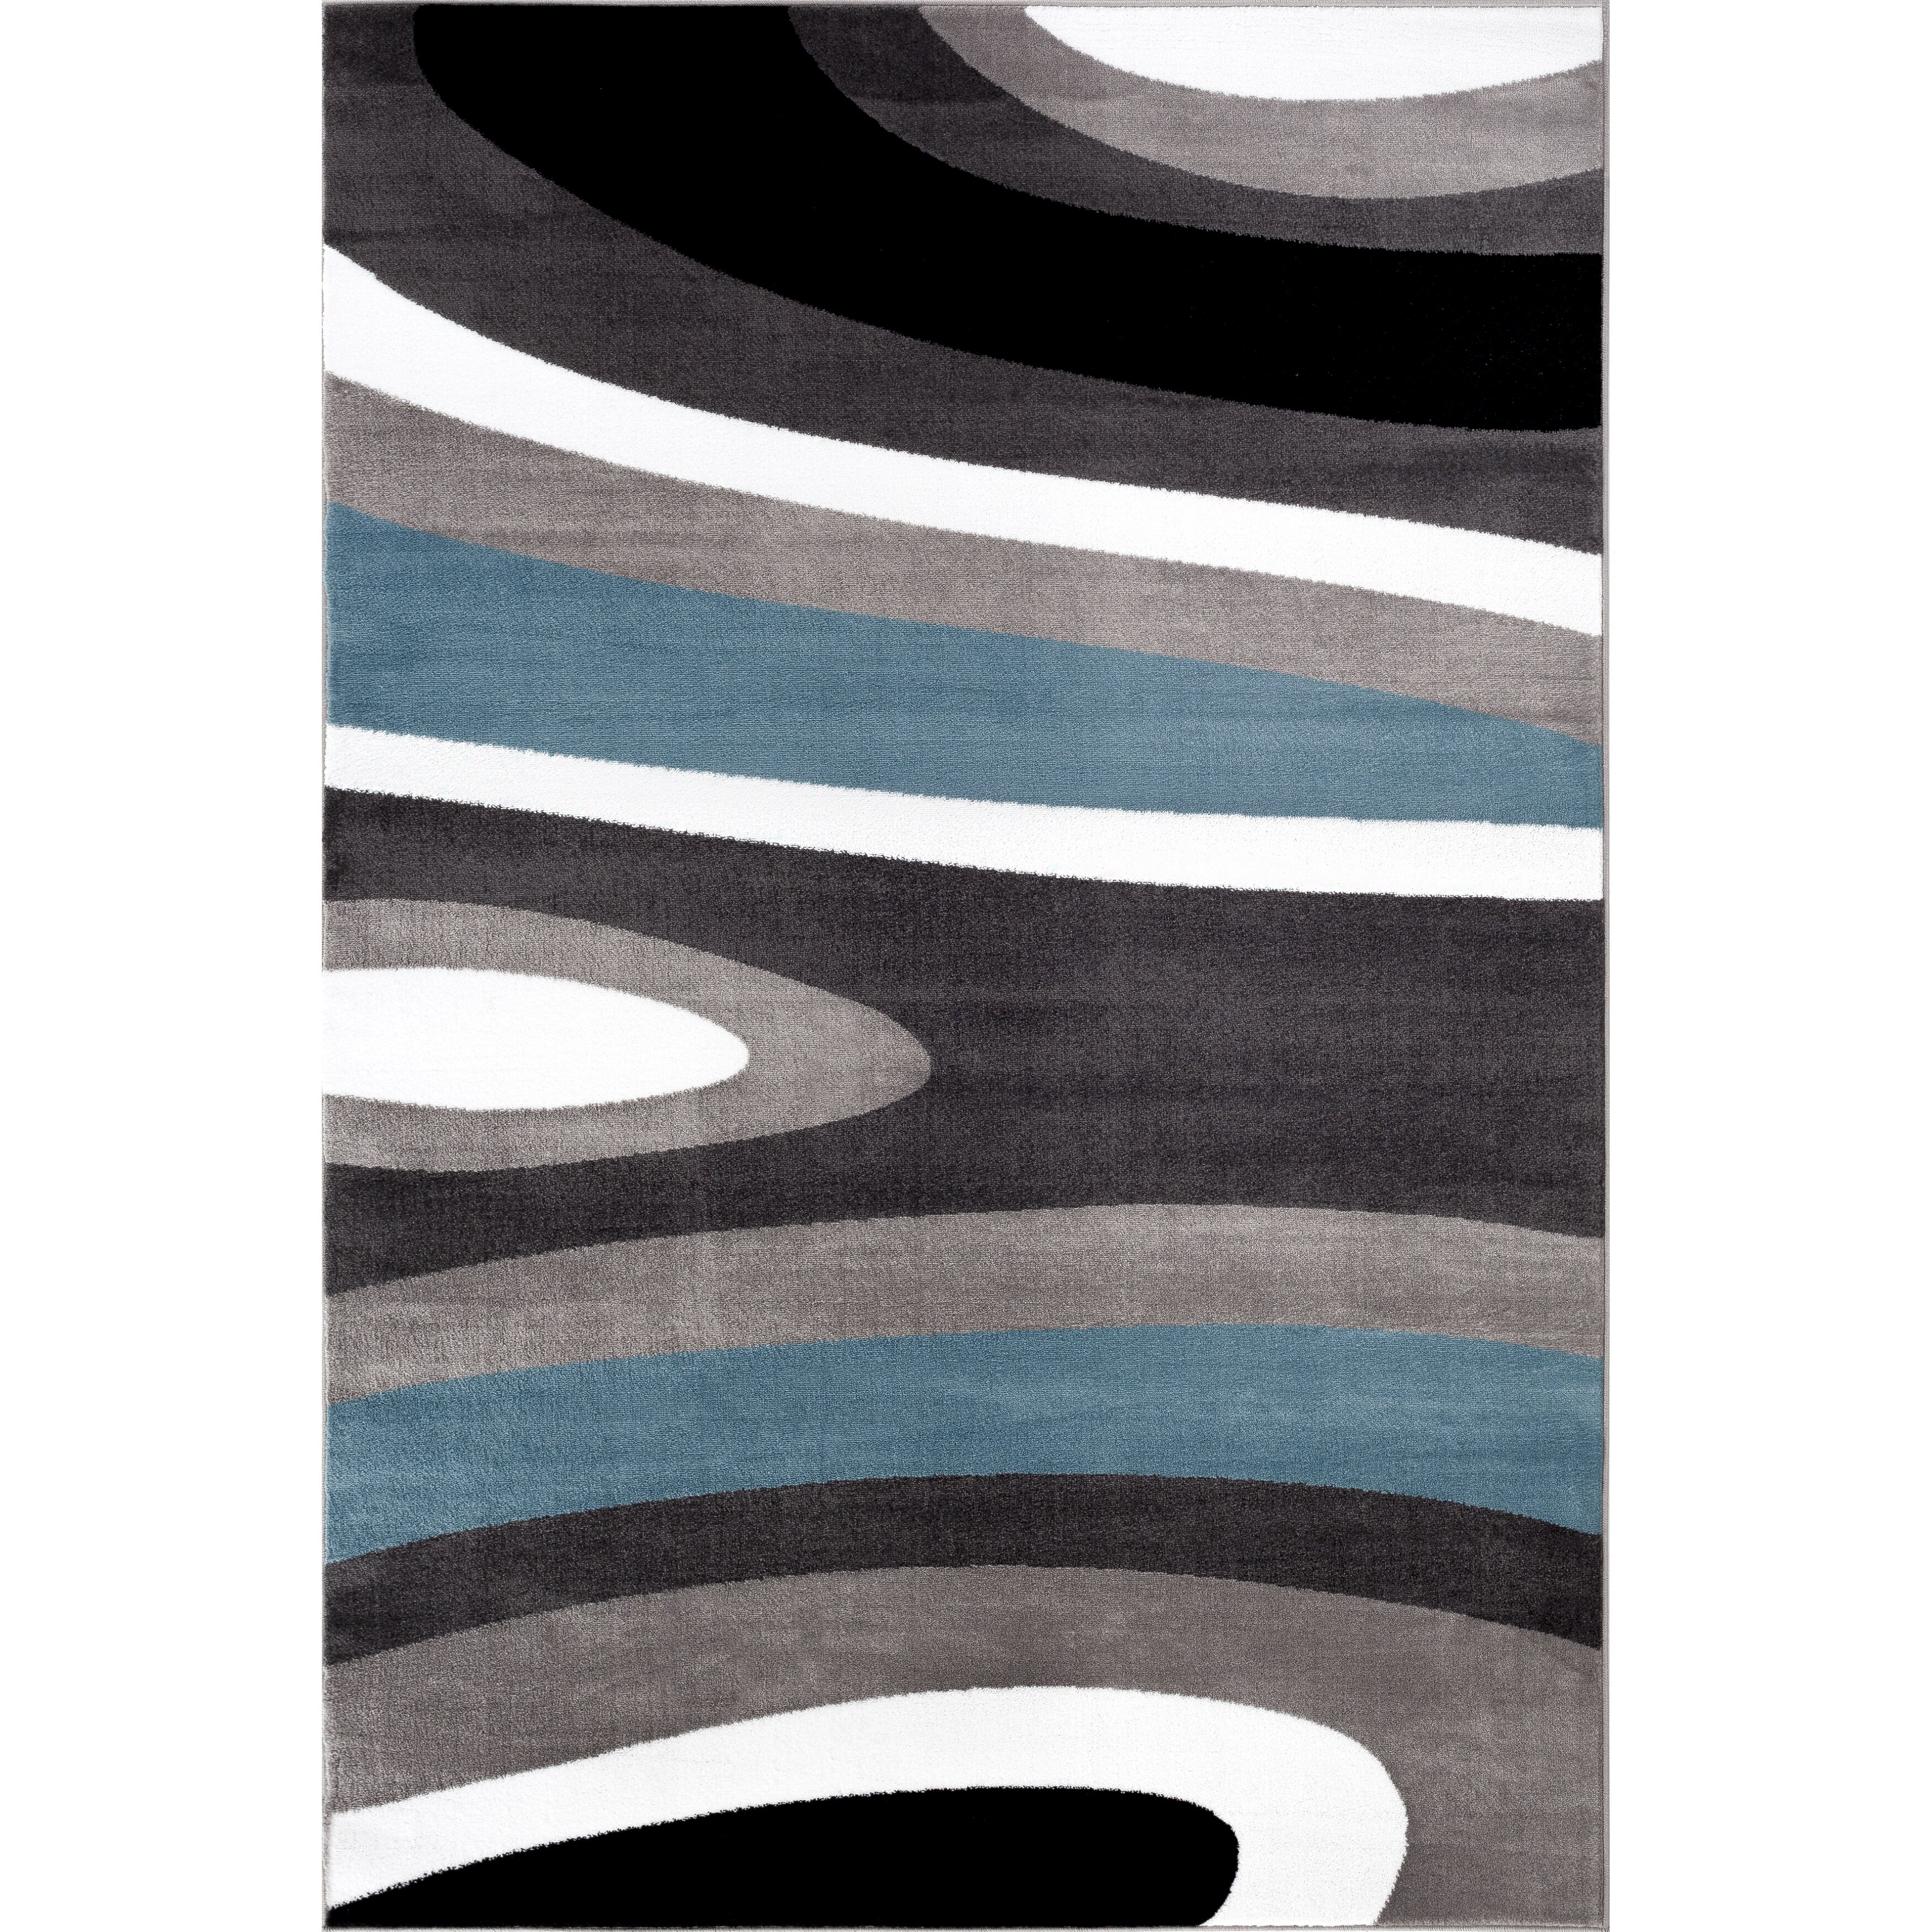 Rug Repair And Cleaning Images Woven Woolen DIY Wall